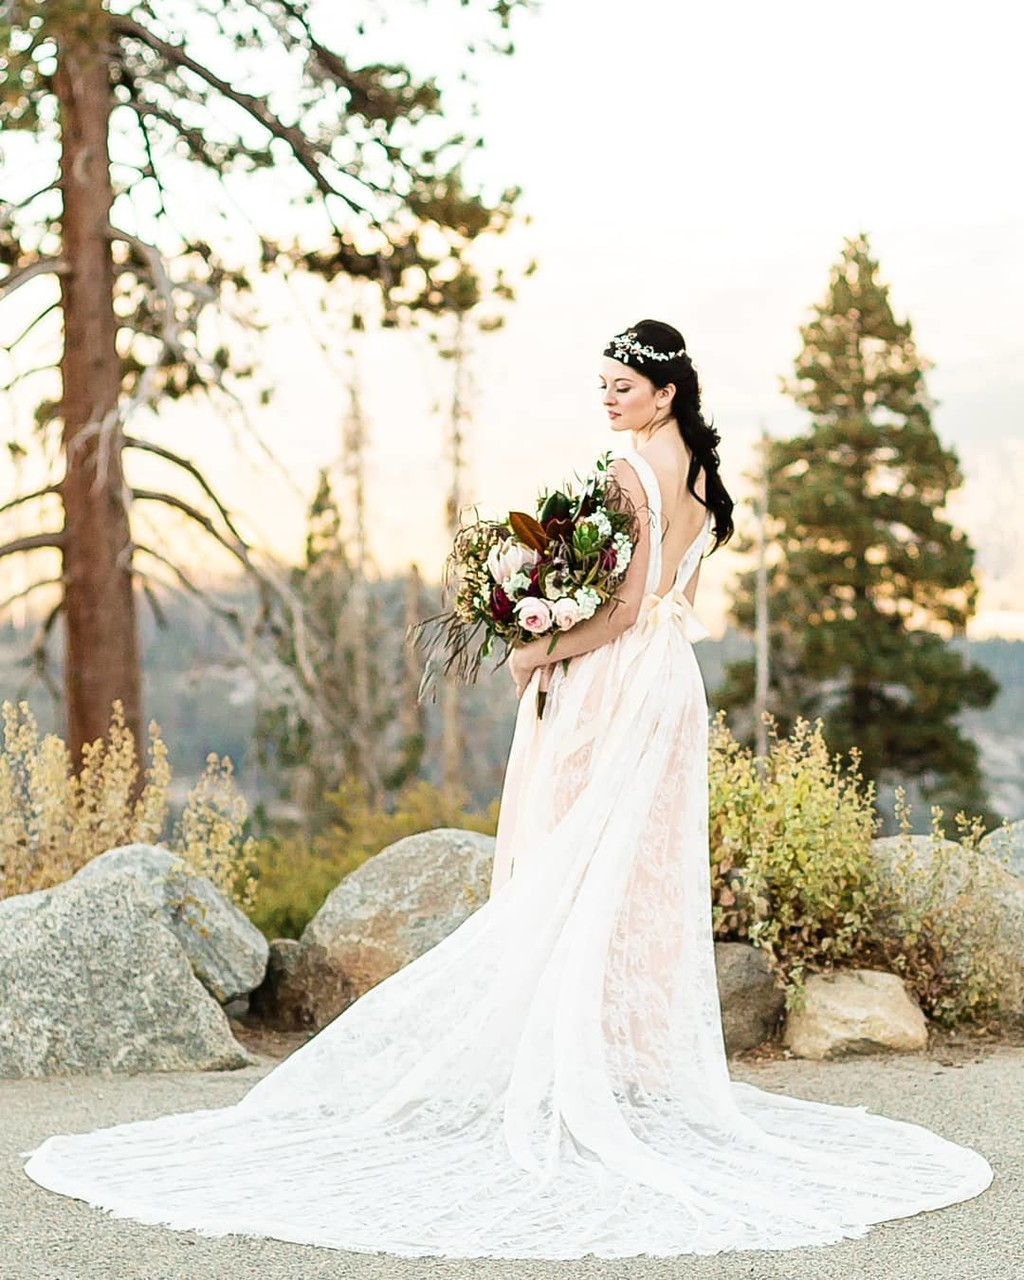 Inspiration Image from Kelley Williams Photography